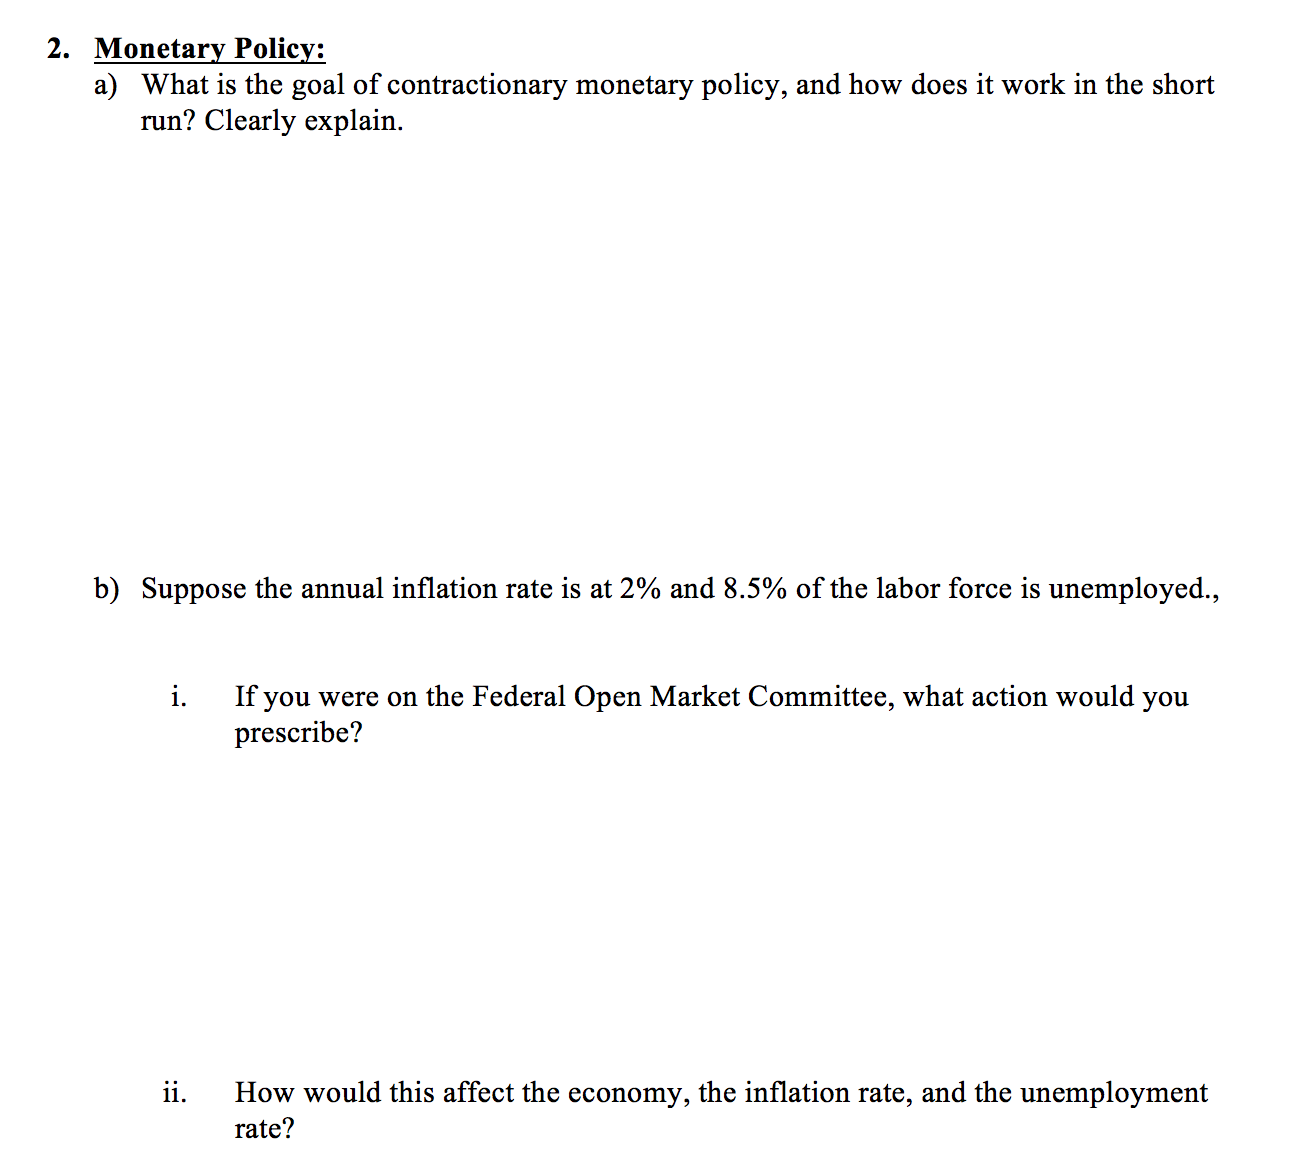 economics archive 21 2016 chegg com what is the goal of contractionary monetary policy and how does it work in the short run clearly explain suppose the annual inflation rate is at 2% and